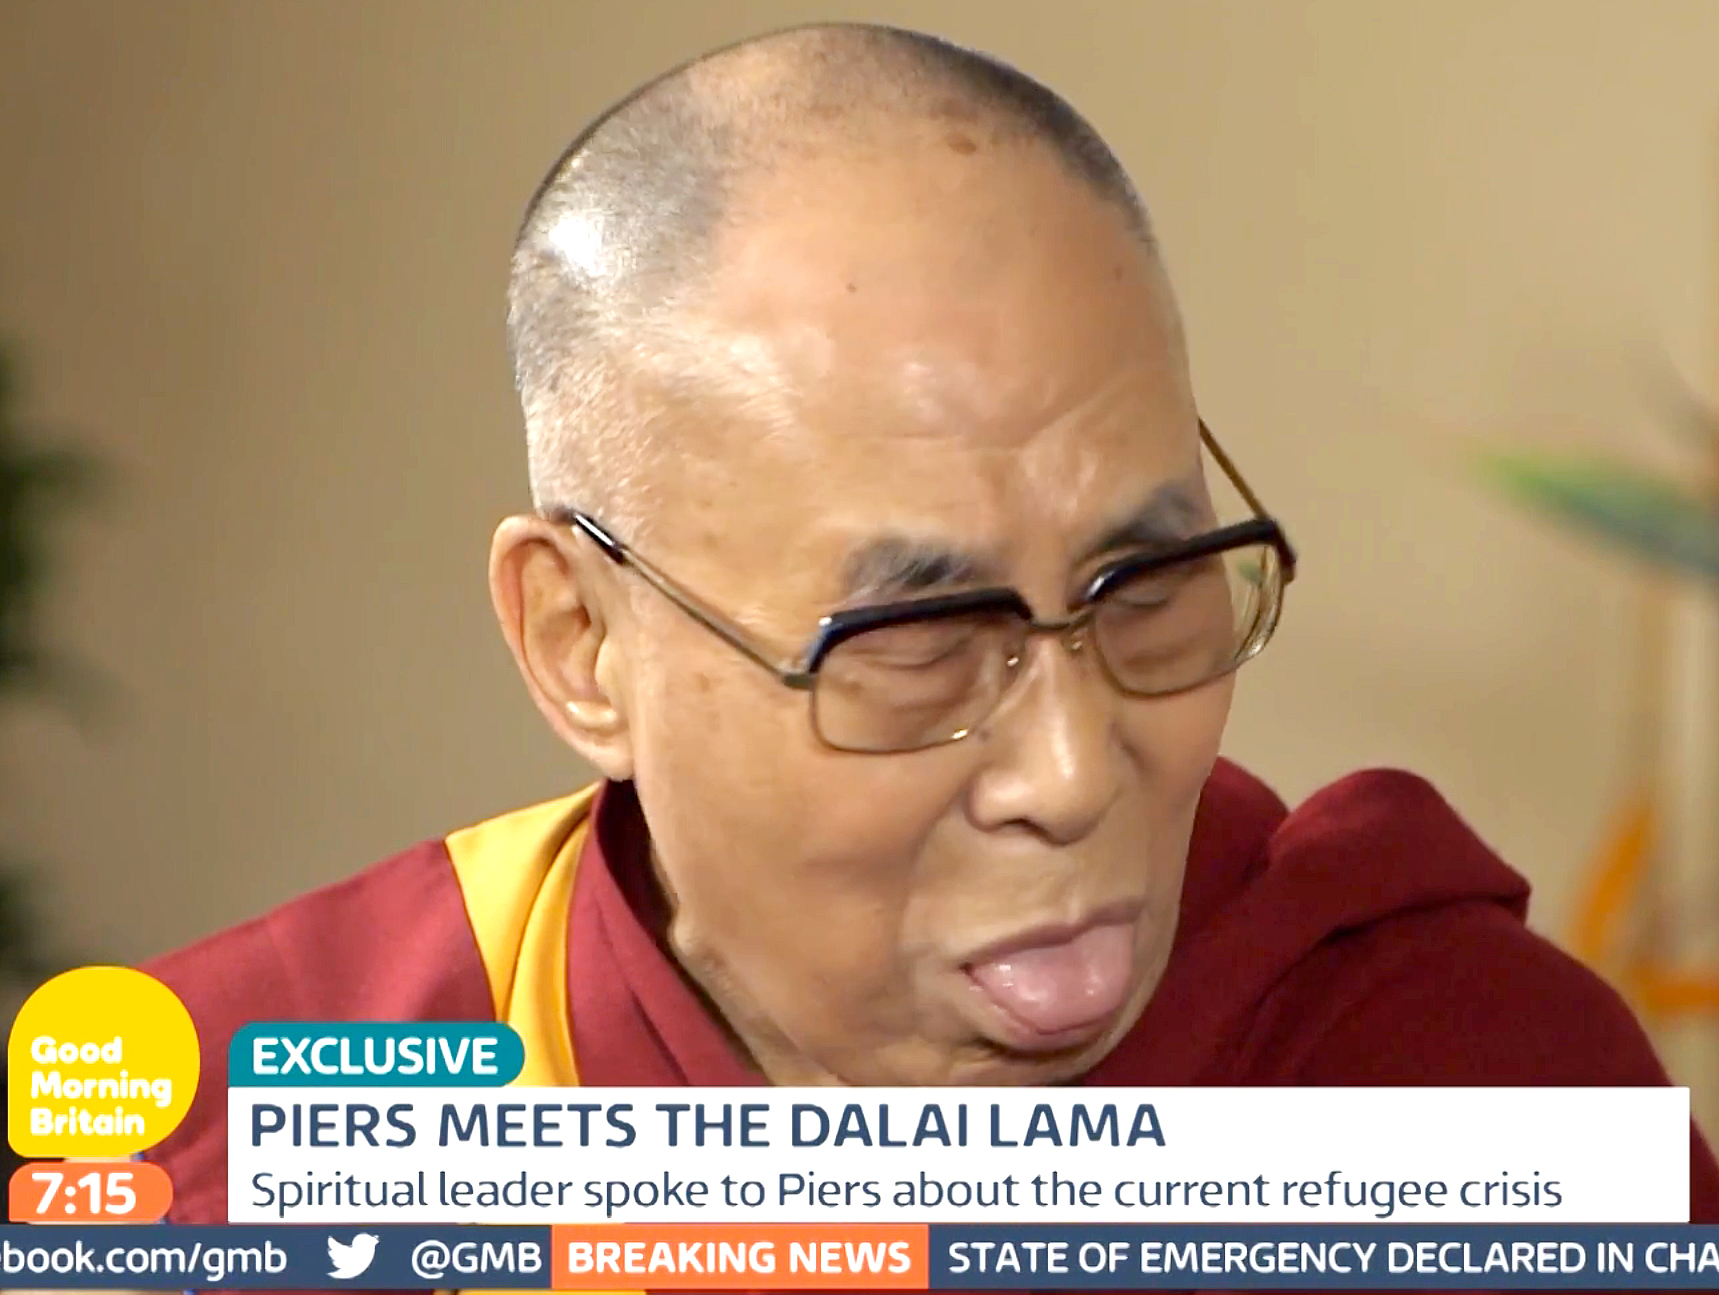 The Dalai Lama comments on Angelina Jolie and Brad Pitt's split.